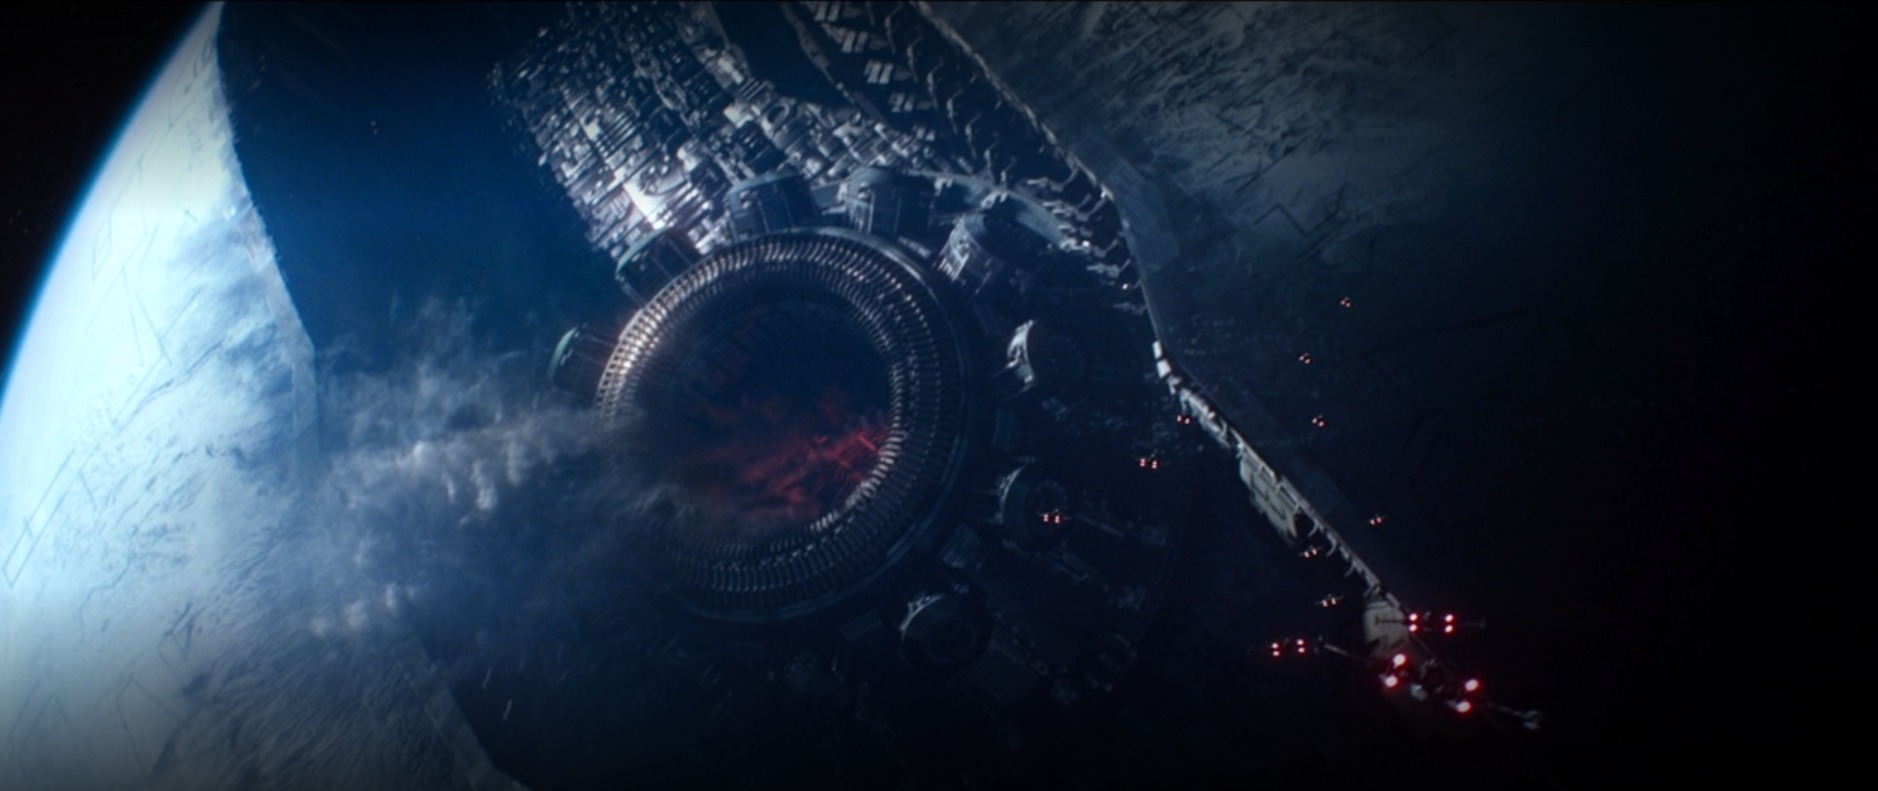 Starkiller Base from Star Wars: The Force Awakens